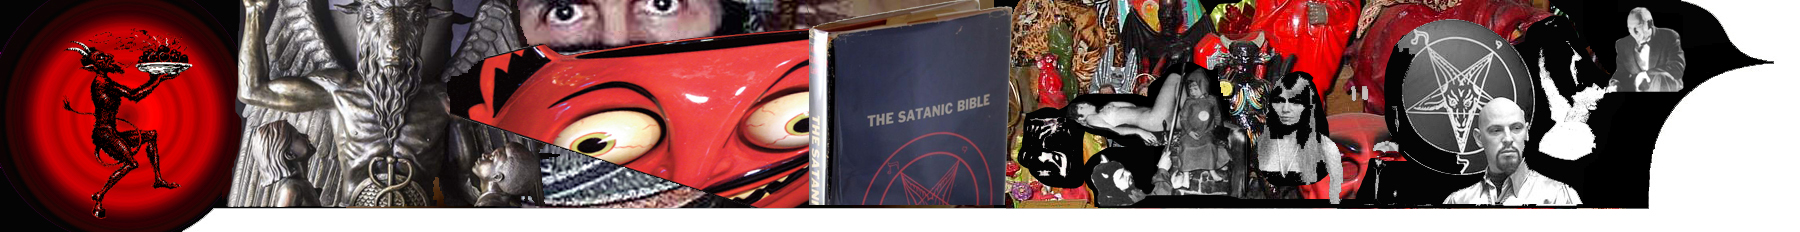 Satanism-from-inception-to-today-with-Satan-as-emcee